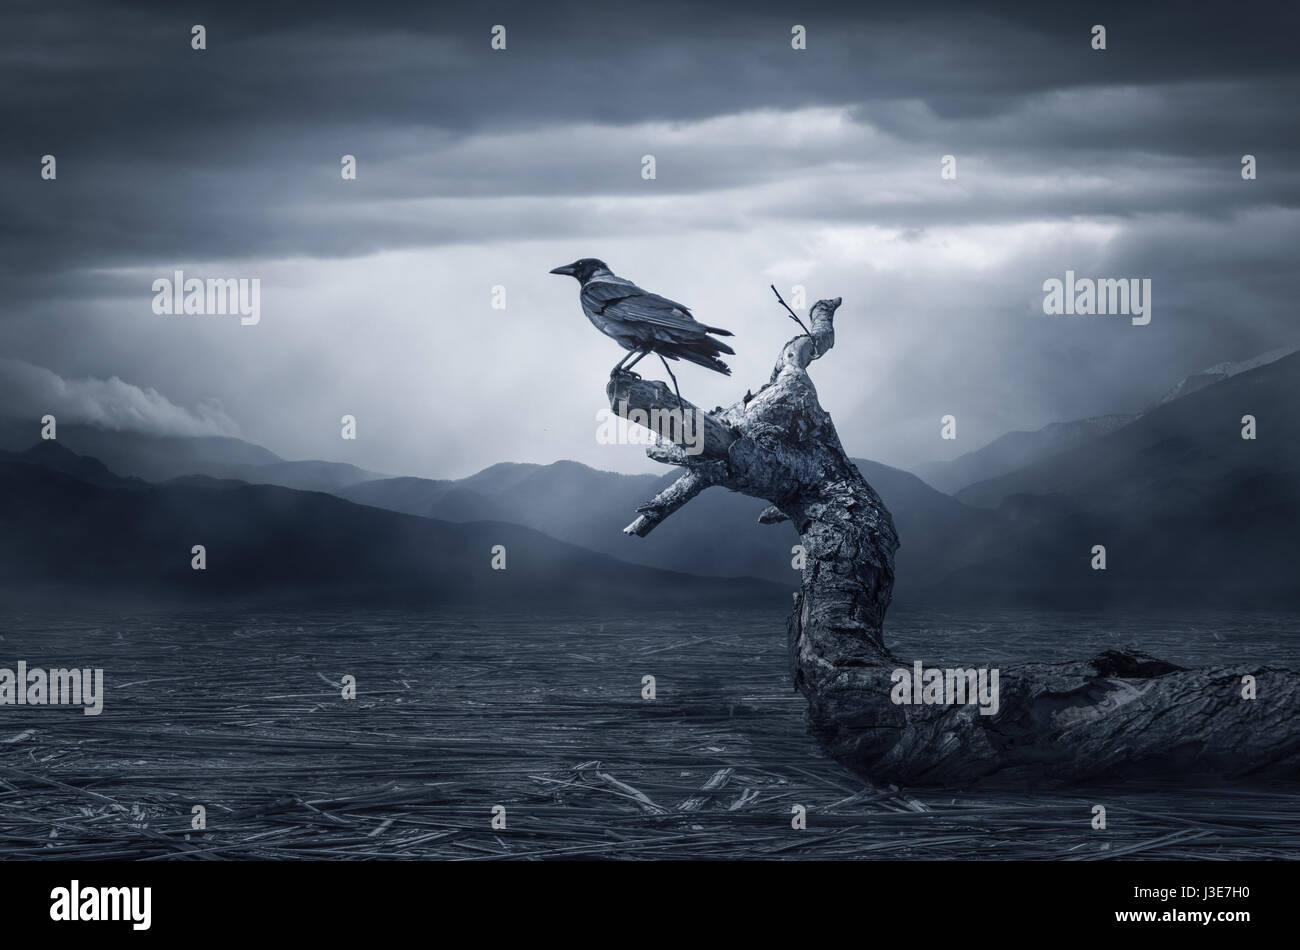 Black raven in moonlight perched on tree. Scary, creepy, gothic setting. Cloudy night. Halloween - Stock Image